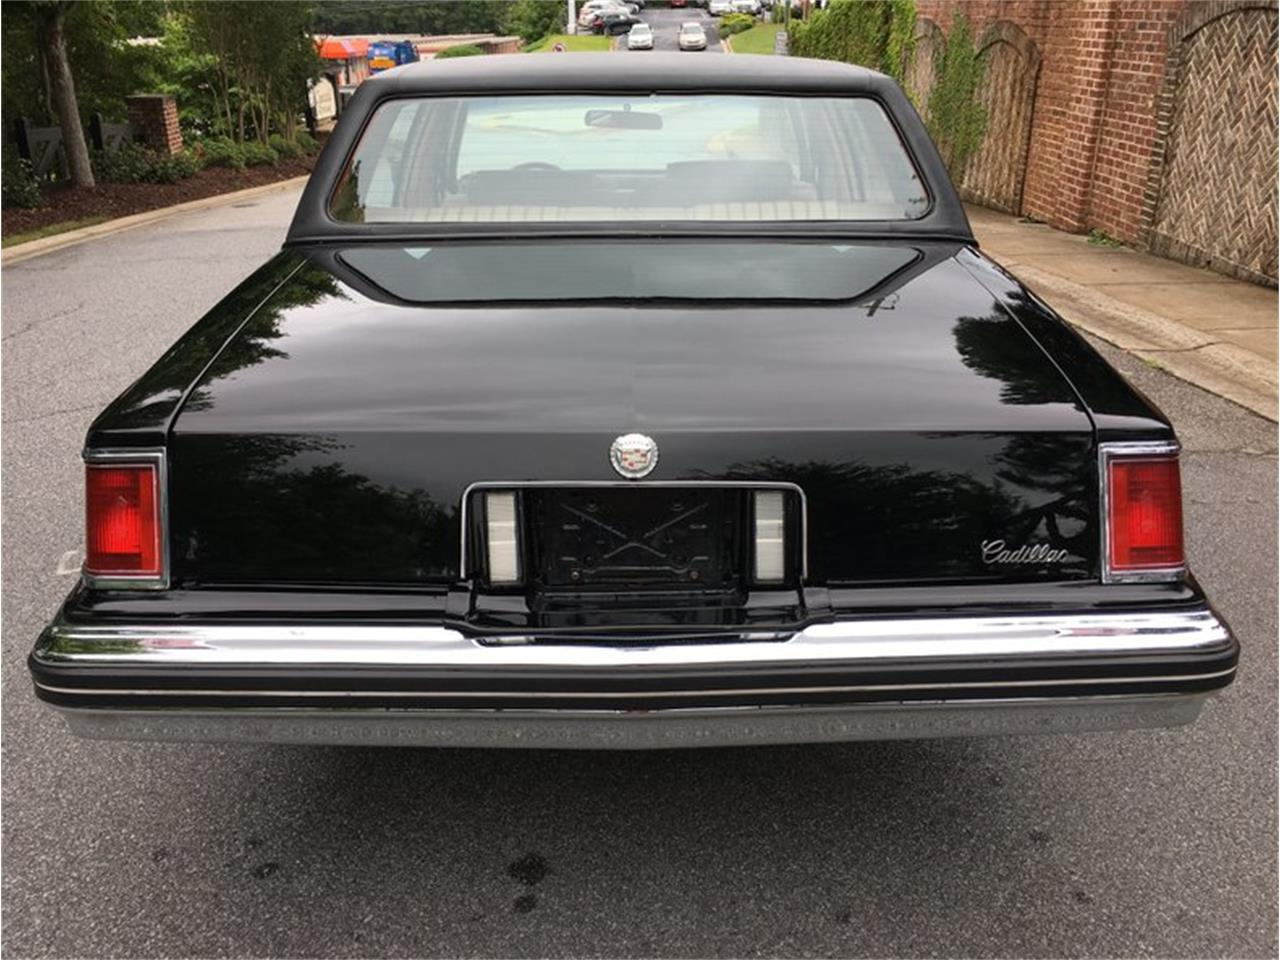 Large Picture of '76 Cadillac Seville located in North Carolina Offered by GAA Classic Cars Auctions - QHI8